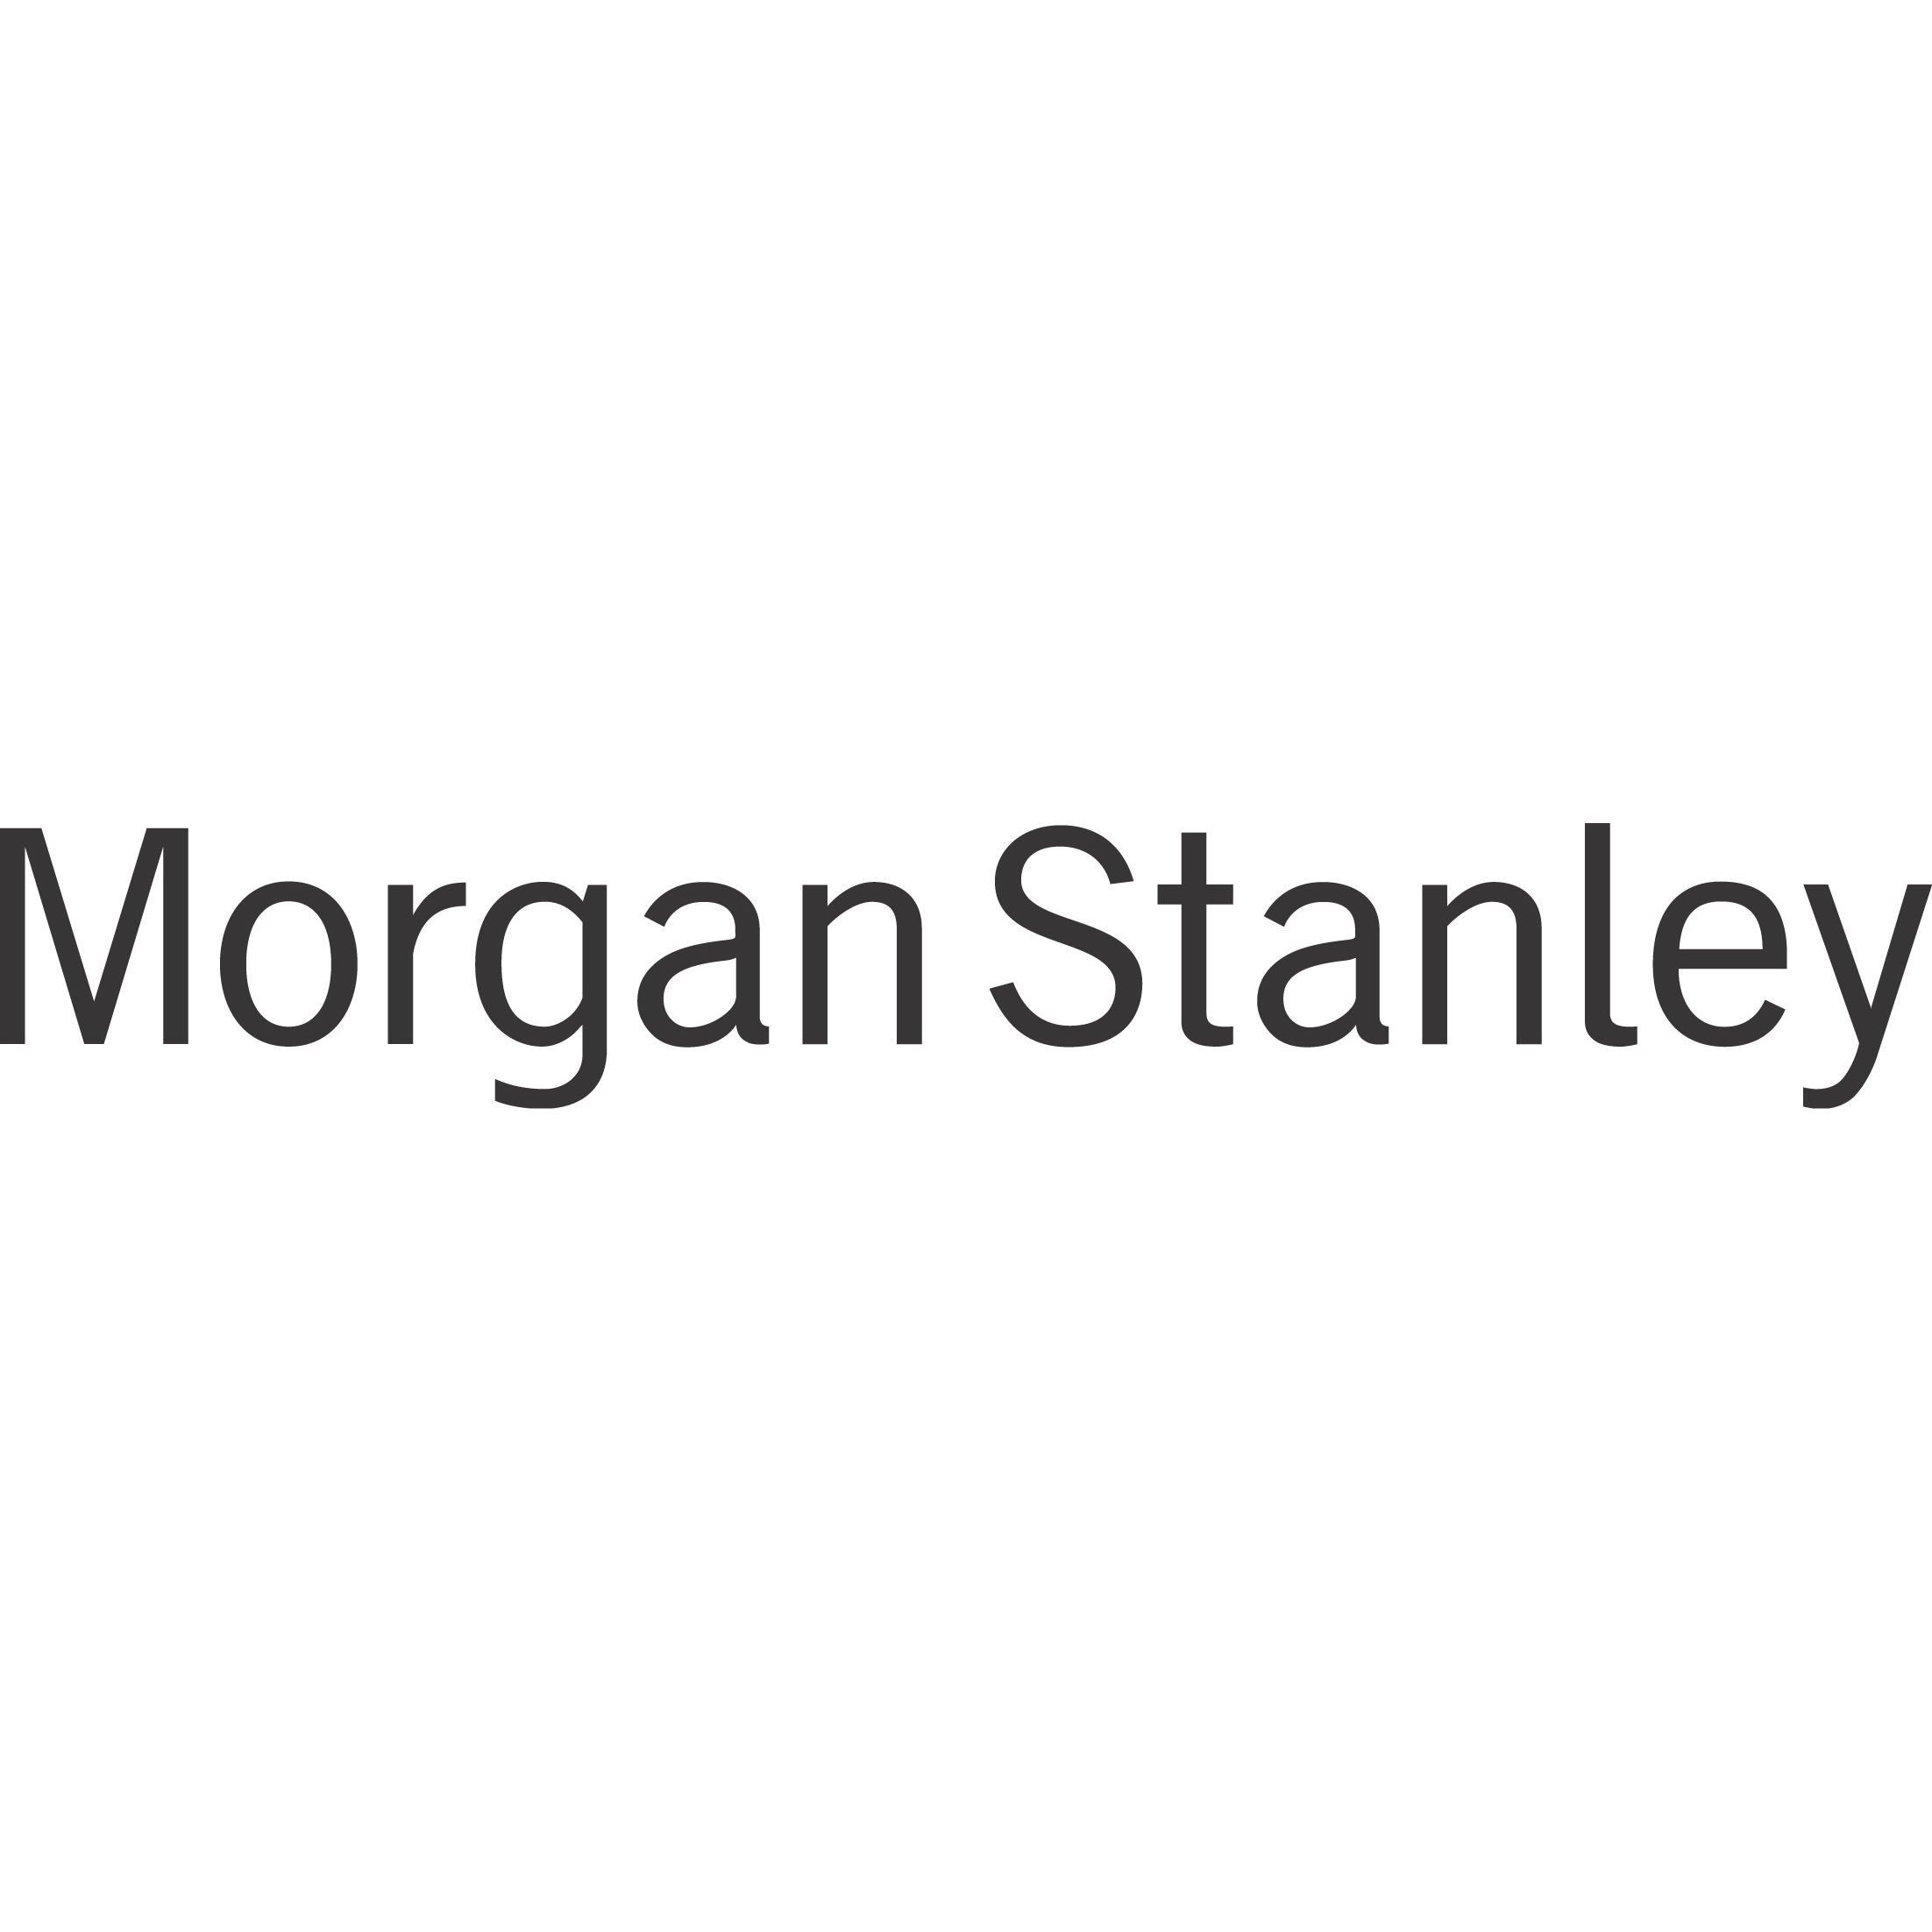 Jason Hillyard - Morgan Stanley | Financial Advisor in Omaha,Nebraska